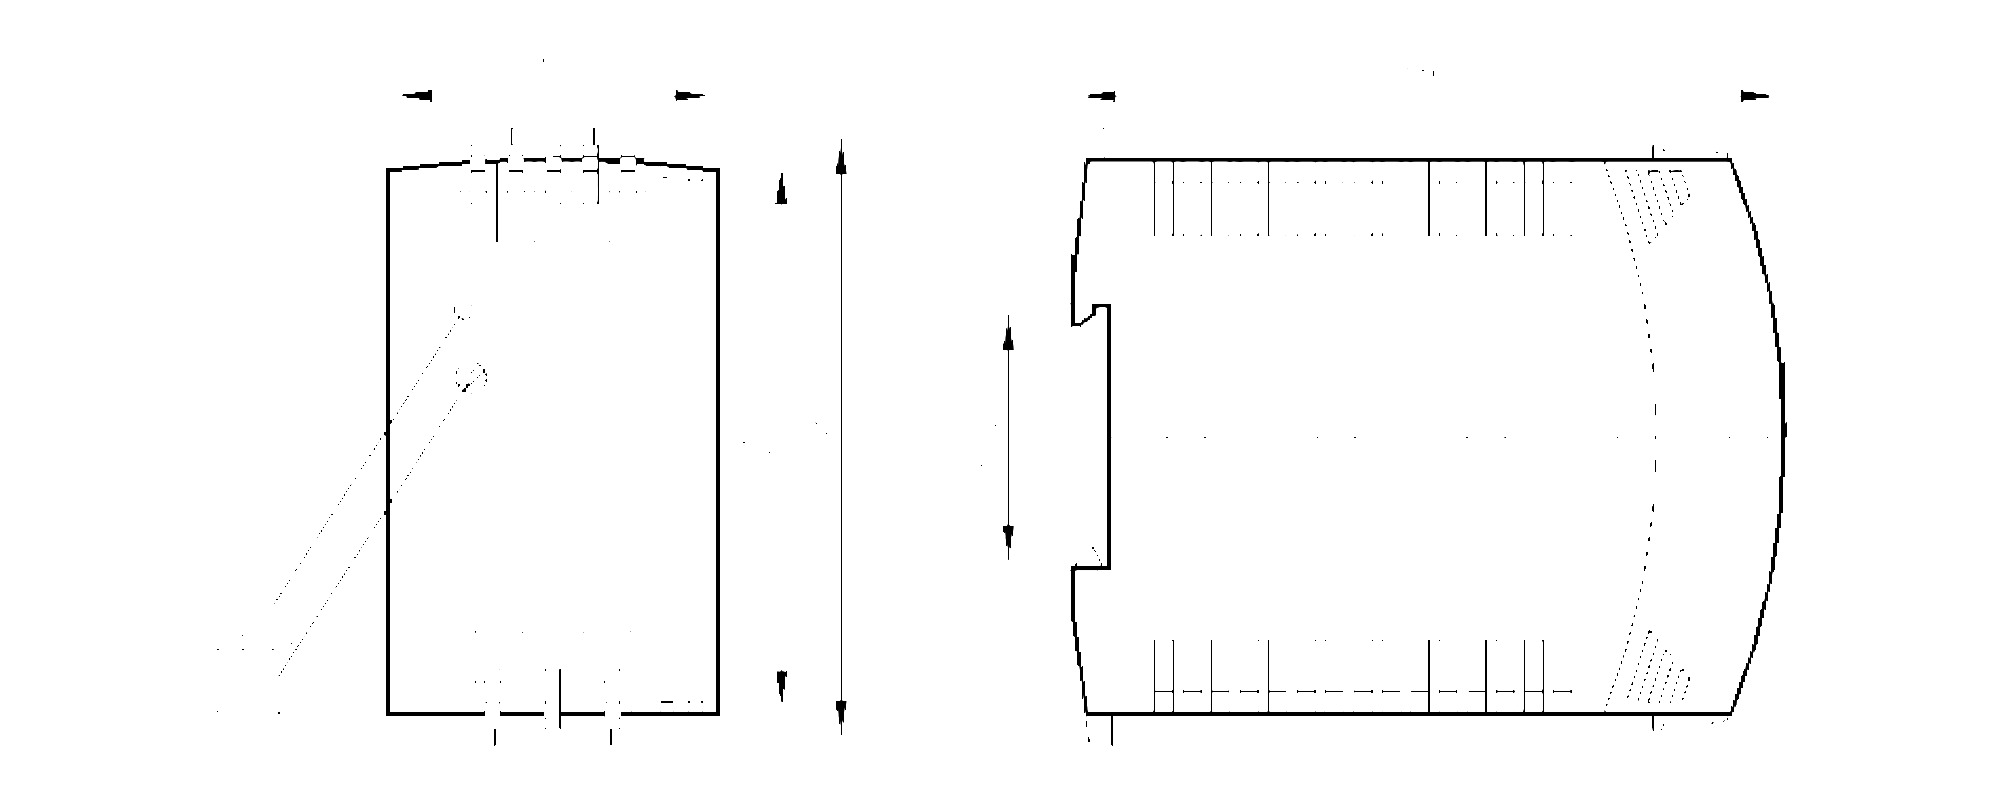 Scale drawing